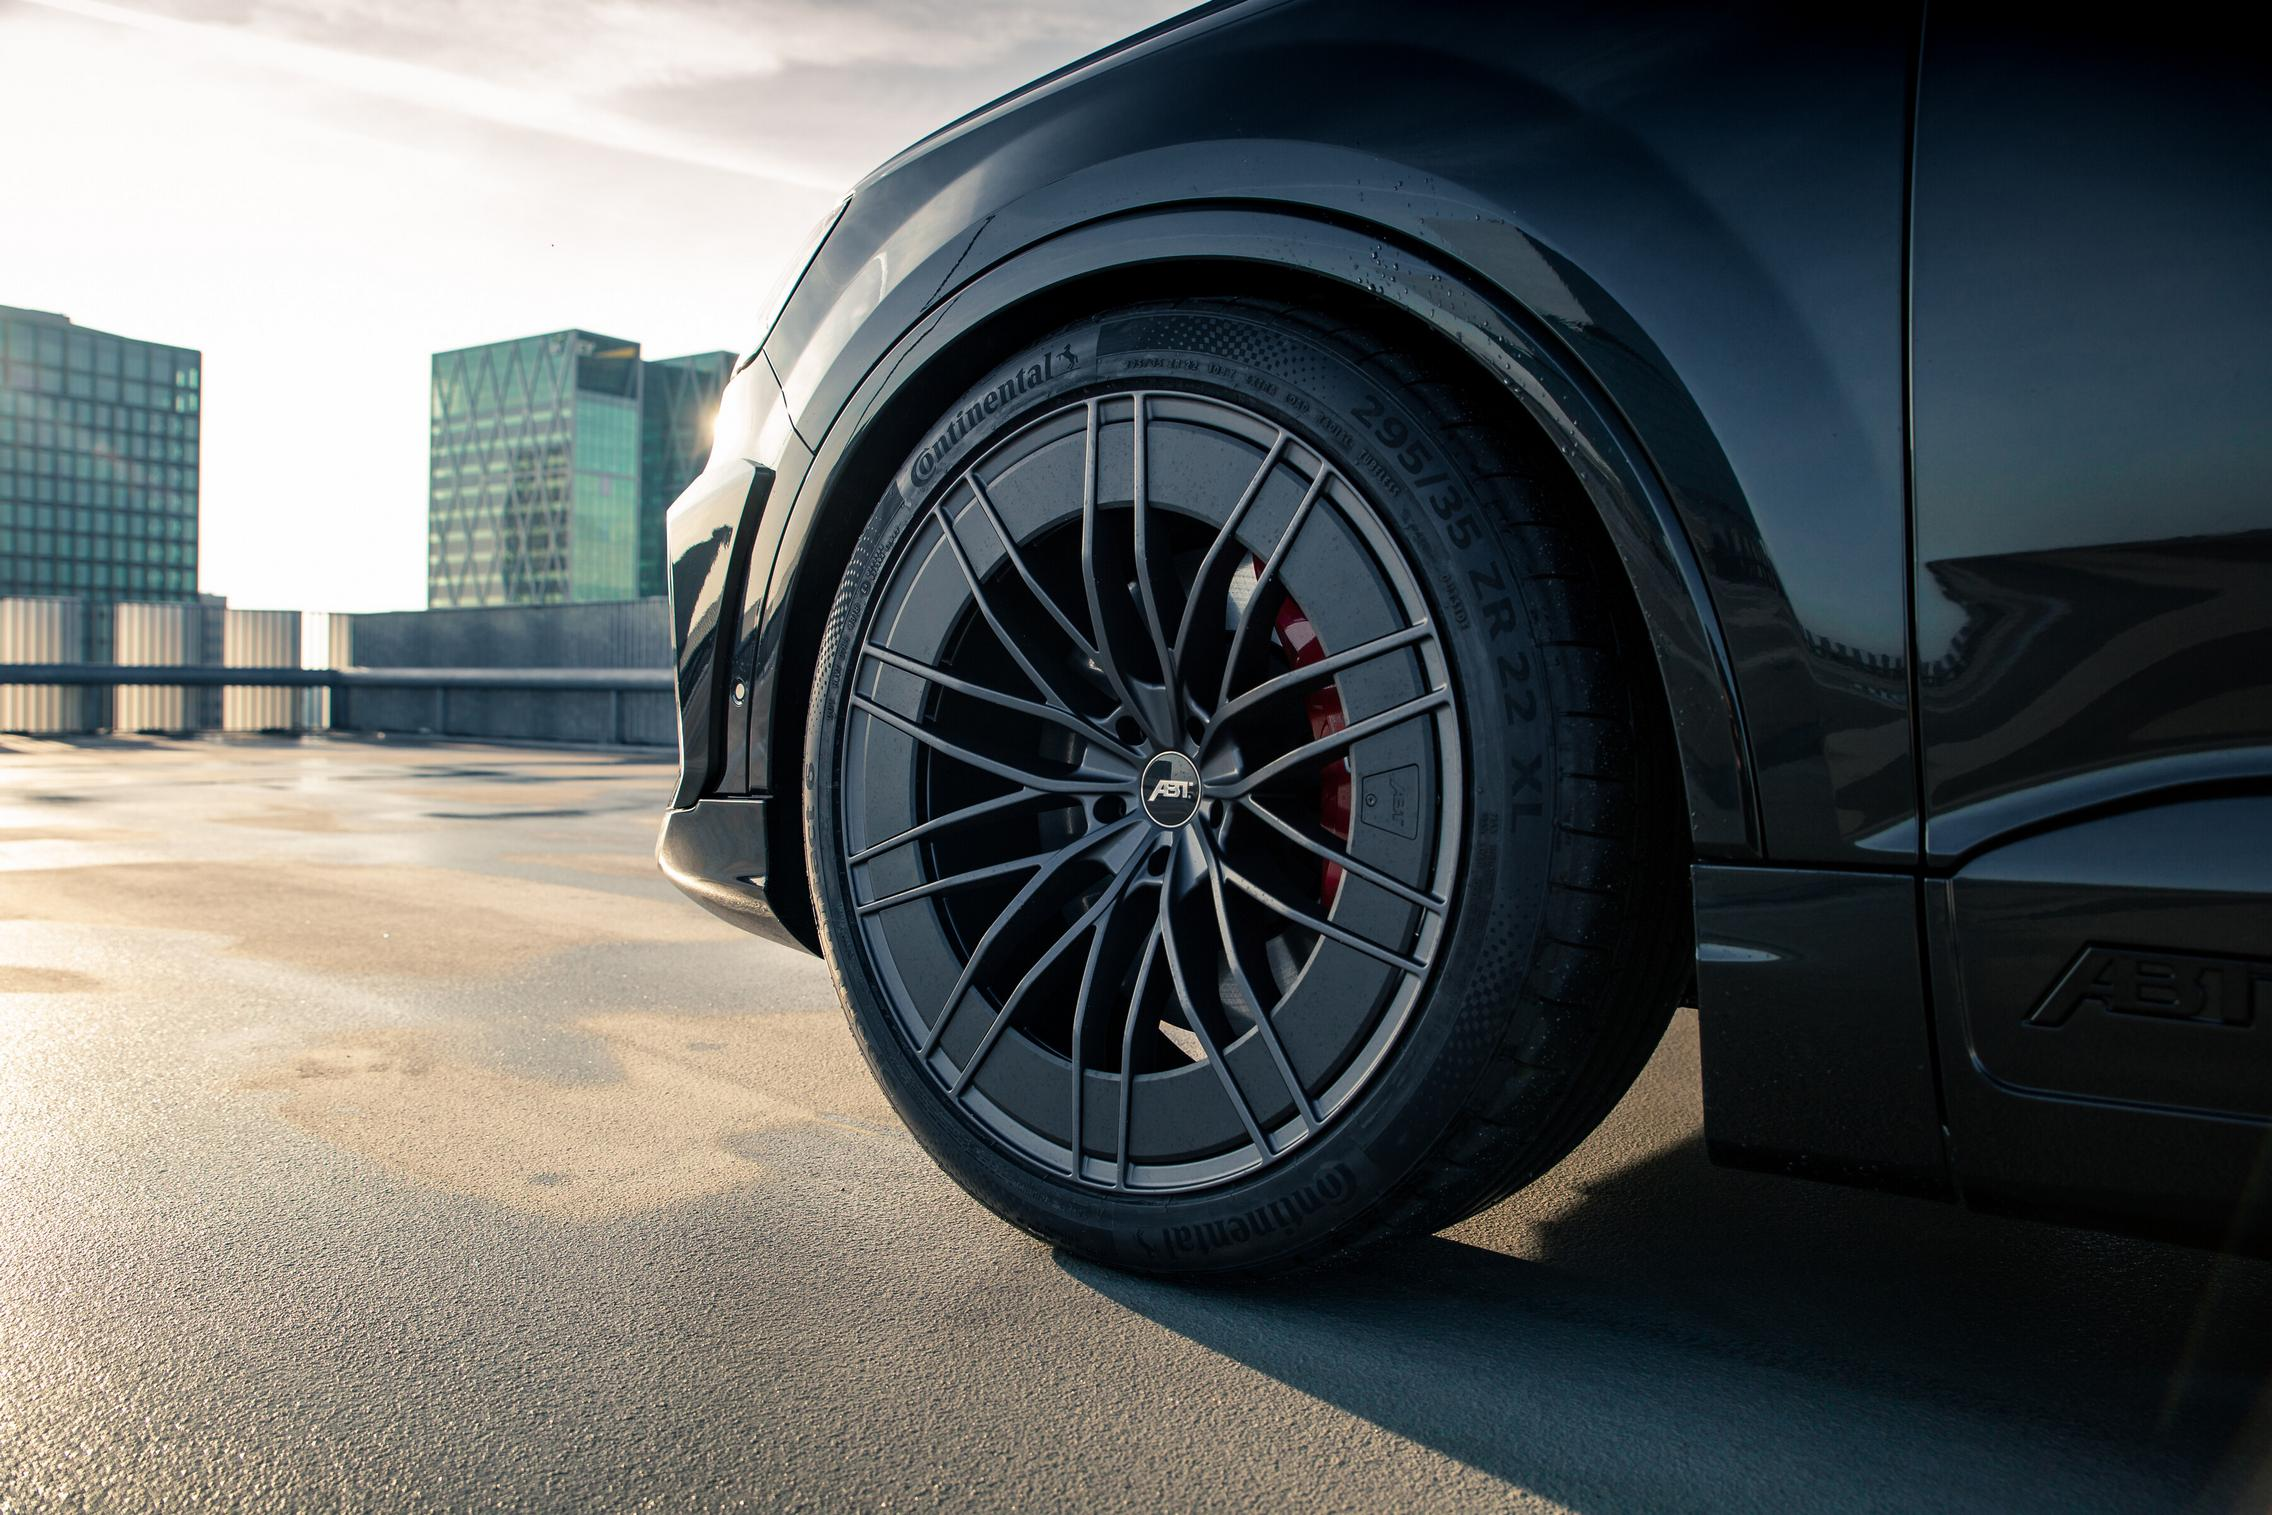 ABT Audi SQ7 wheels